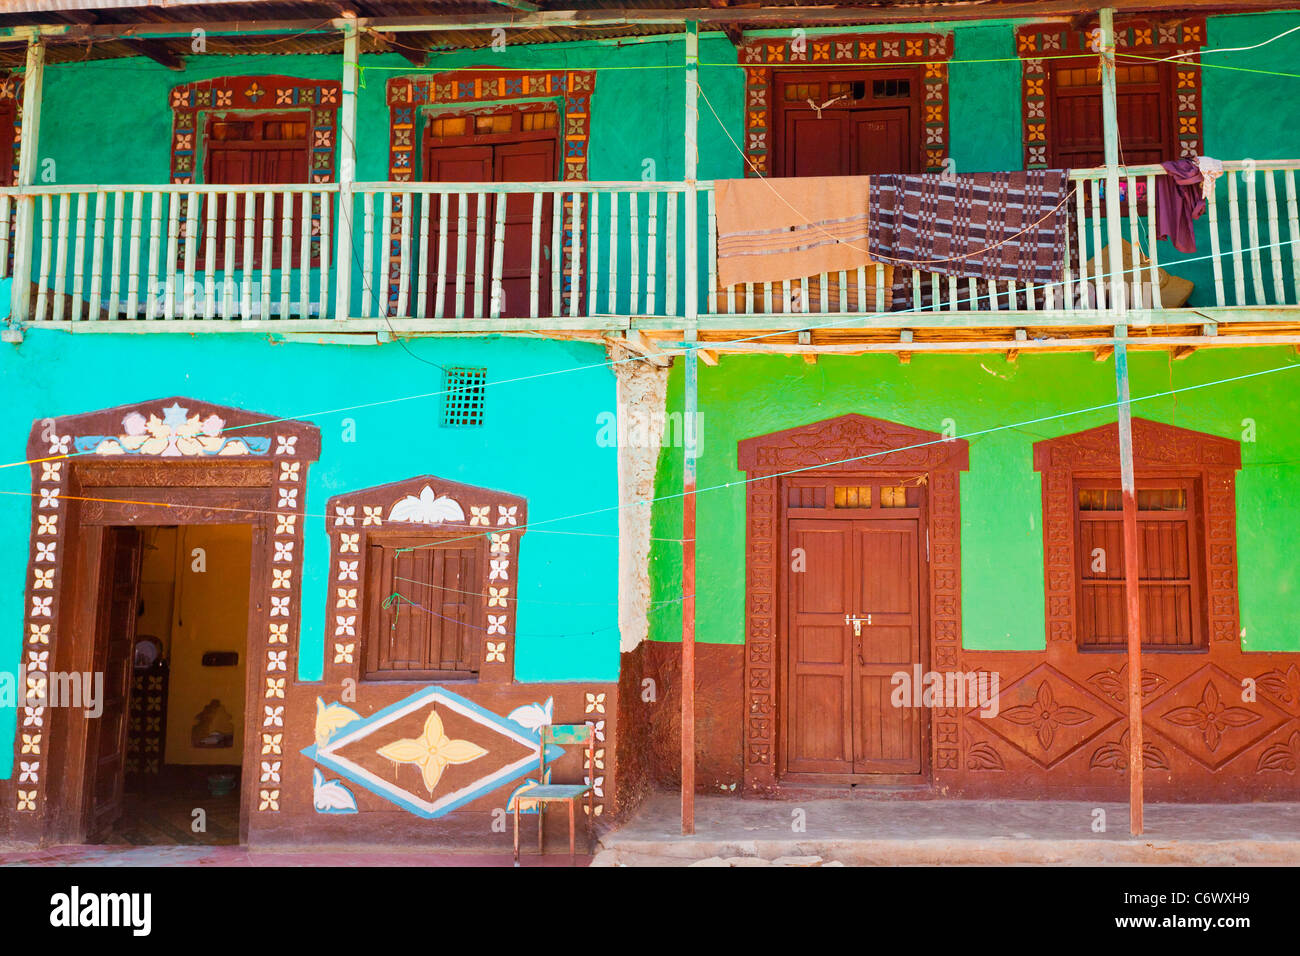 Colourful facade of Sheikh Abadir,s Tomb in the walled city of Harar in Eastern Ethiopia, Africa. - Stock Image